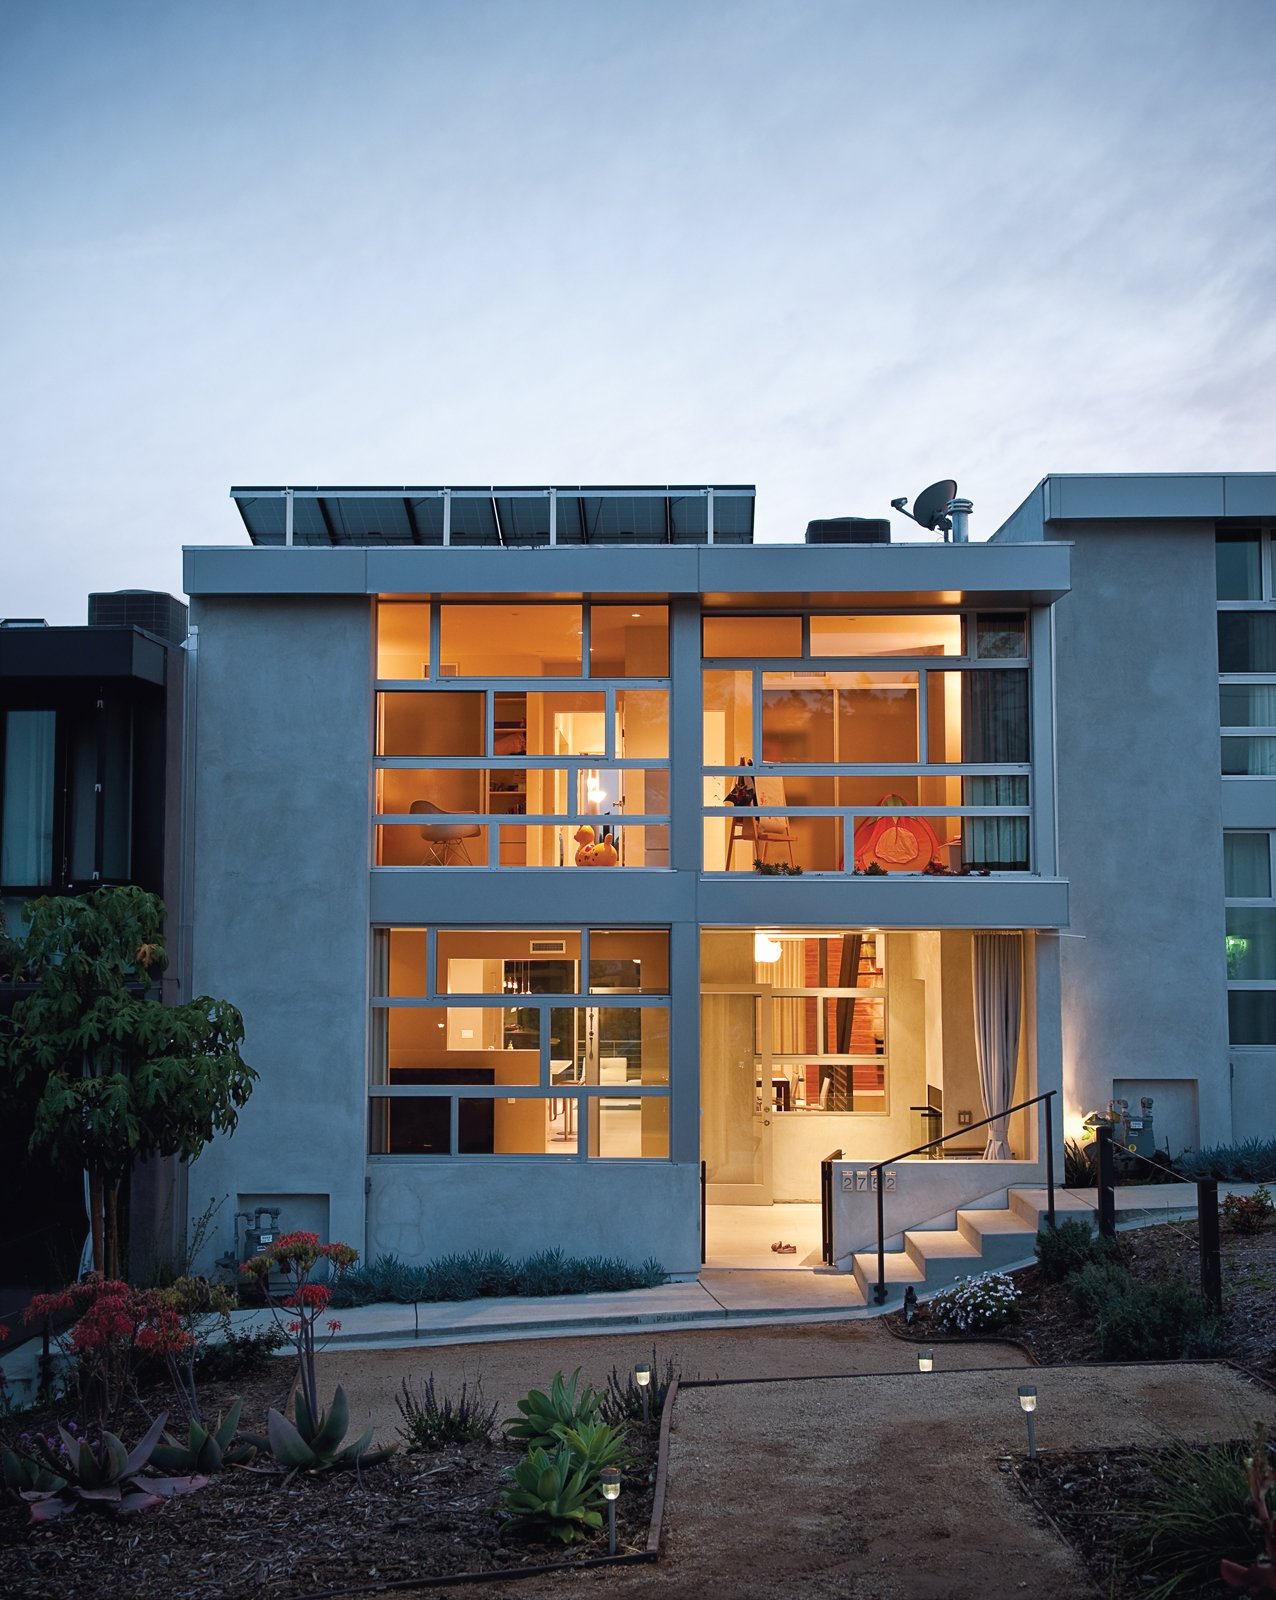 Architects Ana Henton and Greg Williams broke up the uniformity of the seven town homes by making a feature of the Jeldwin dual-glazed windows, laid horizontally here and vertically on the neighboring units.